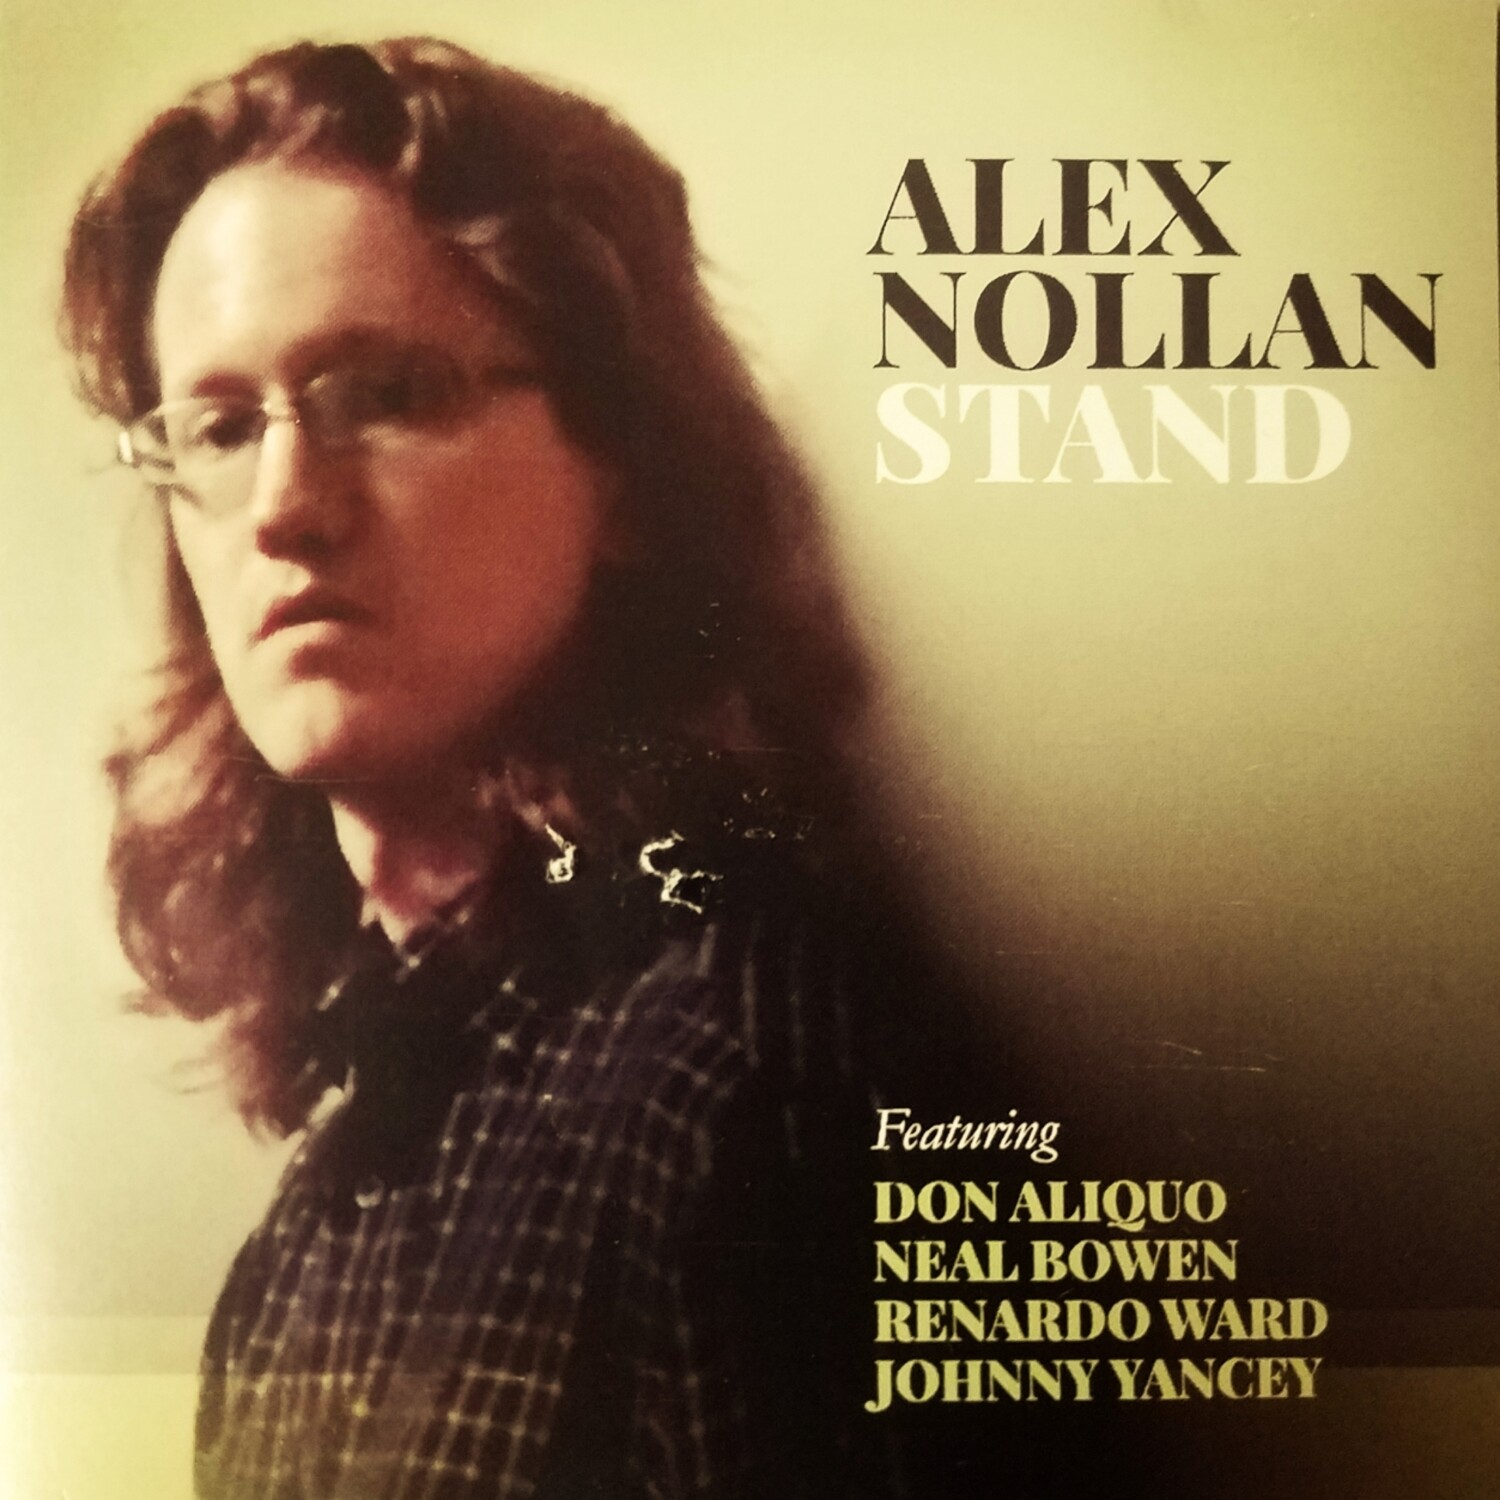 Stand (An Instrumental Jazz Album by Alex Nollan)